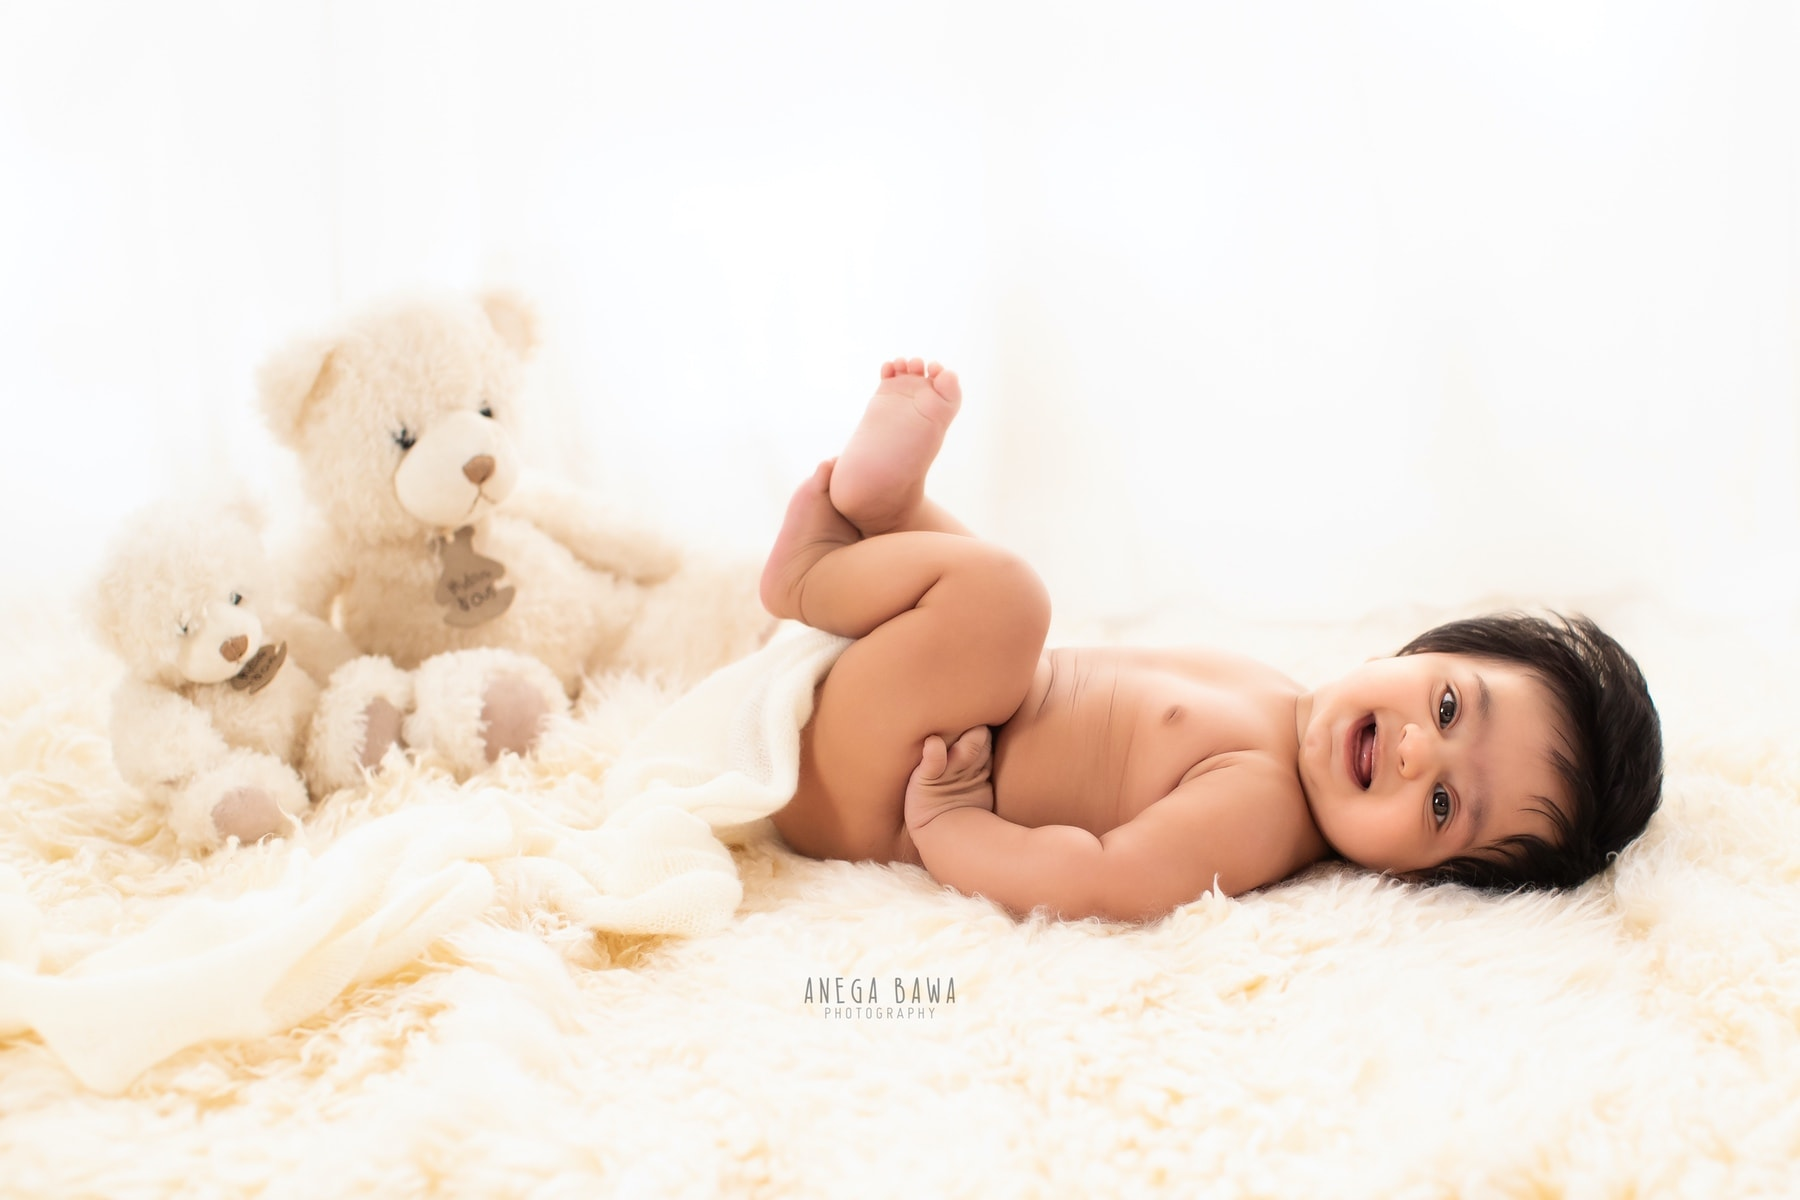 white fur baby photography delhi 5 months baby boy photoshoot gurgaon anega bawa